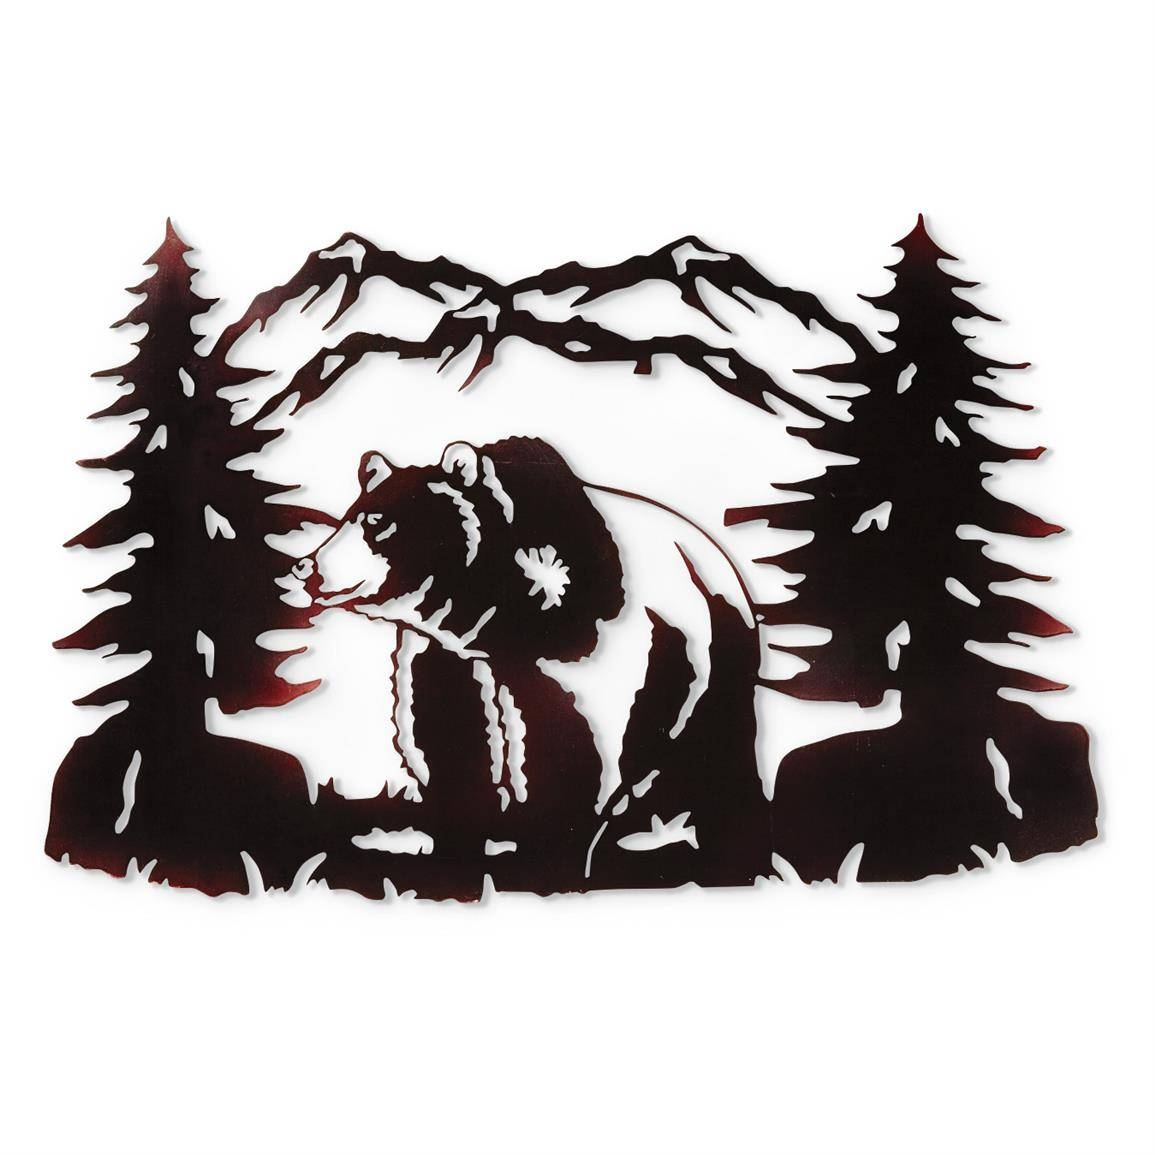 Bear Metal Wall Art – 648669, Wall Art At Sportsman's Guide In Current Wildlife Metal Wall Art (View 4 of 20)